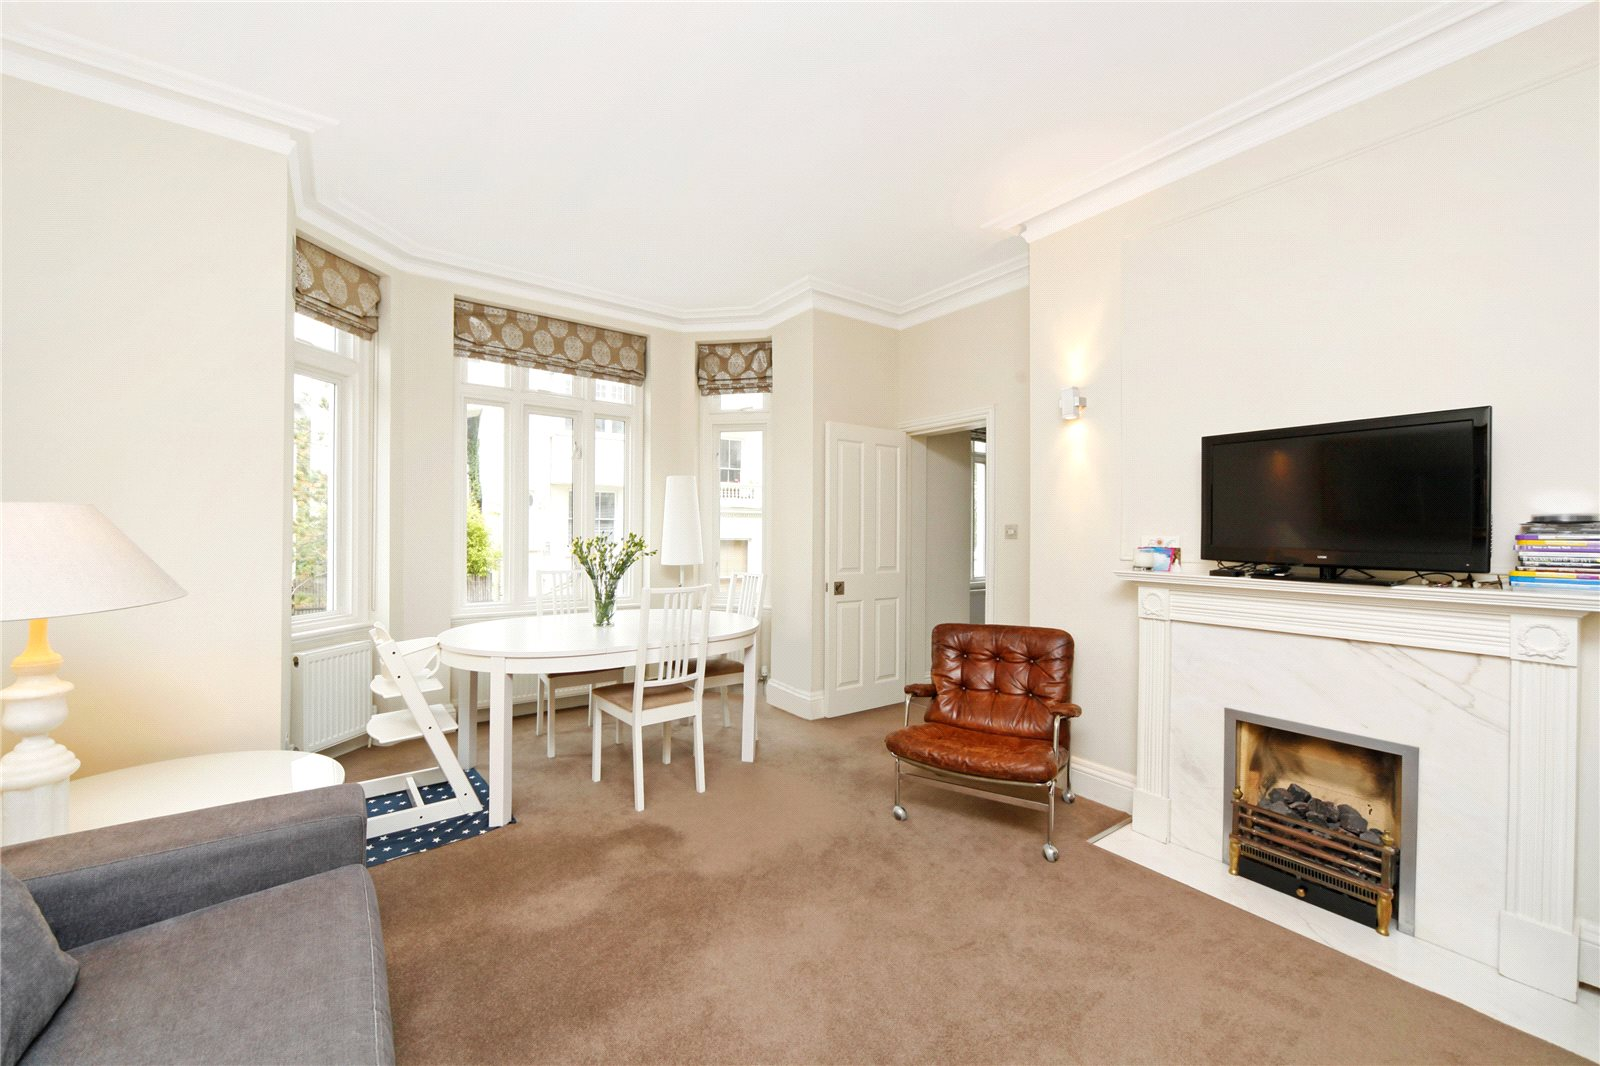 Apartments / Residences for Sale at Prince Edward Mansions, Moscow Road, Bayswater, W2 Bayswater, England